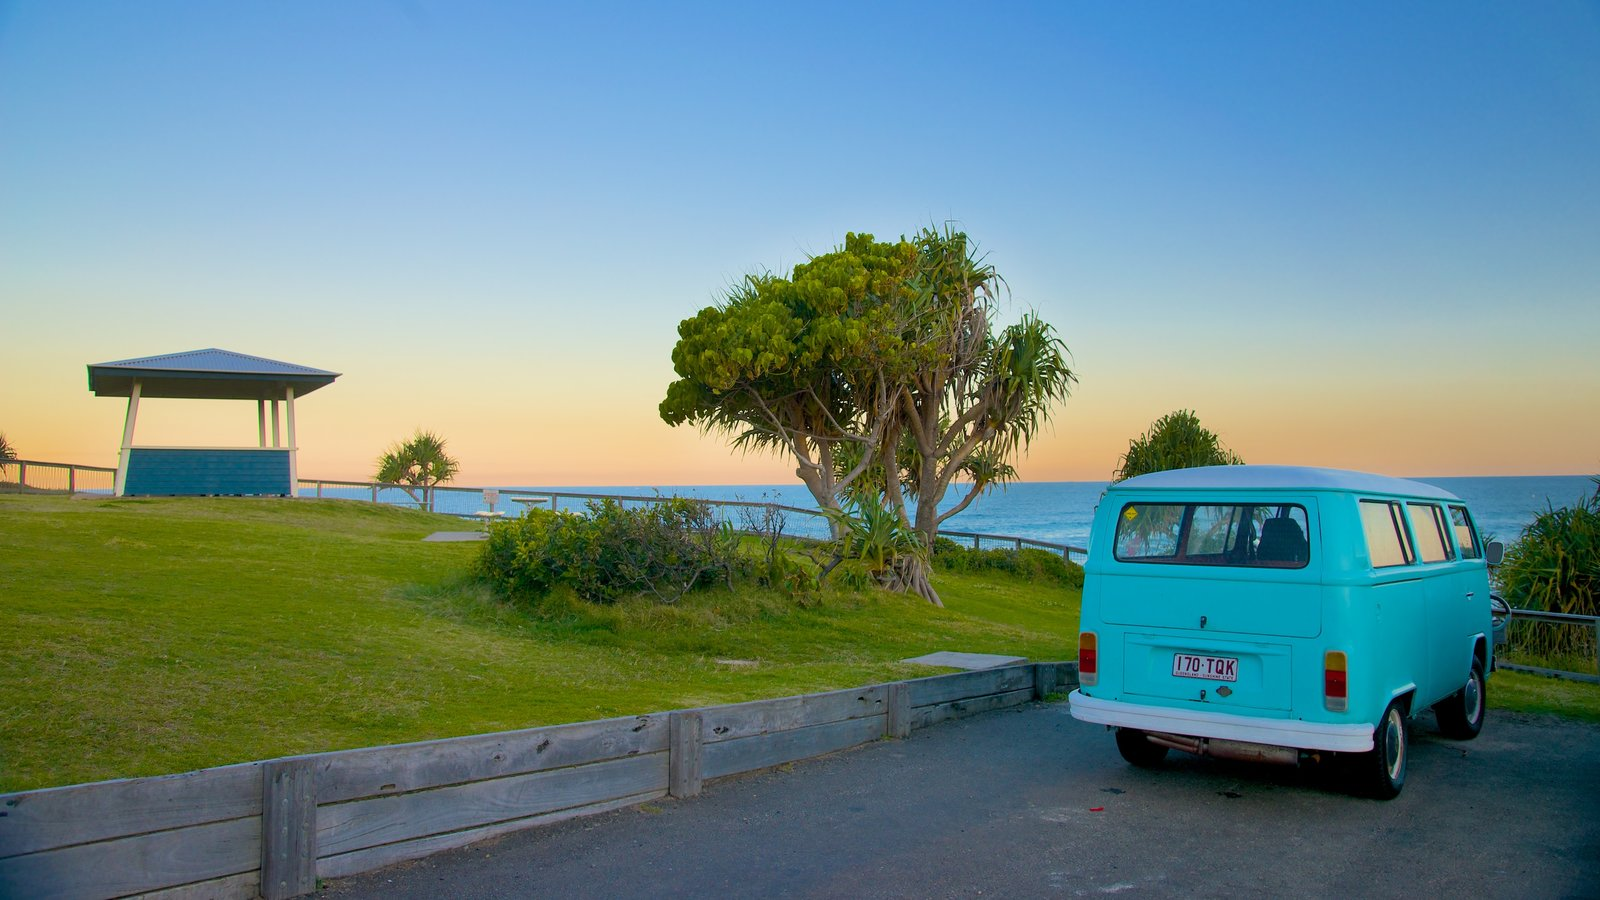 Coolum Beach which includes touring, a sunset and general coastal views